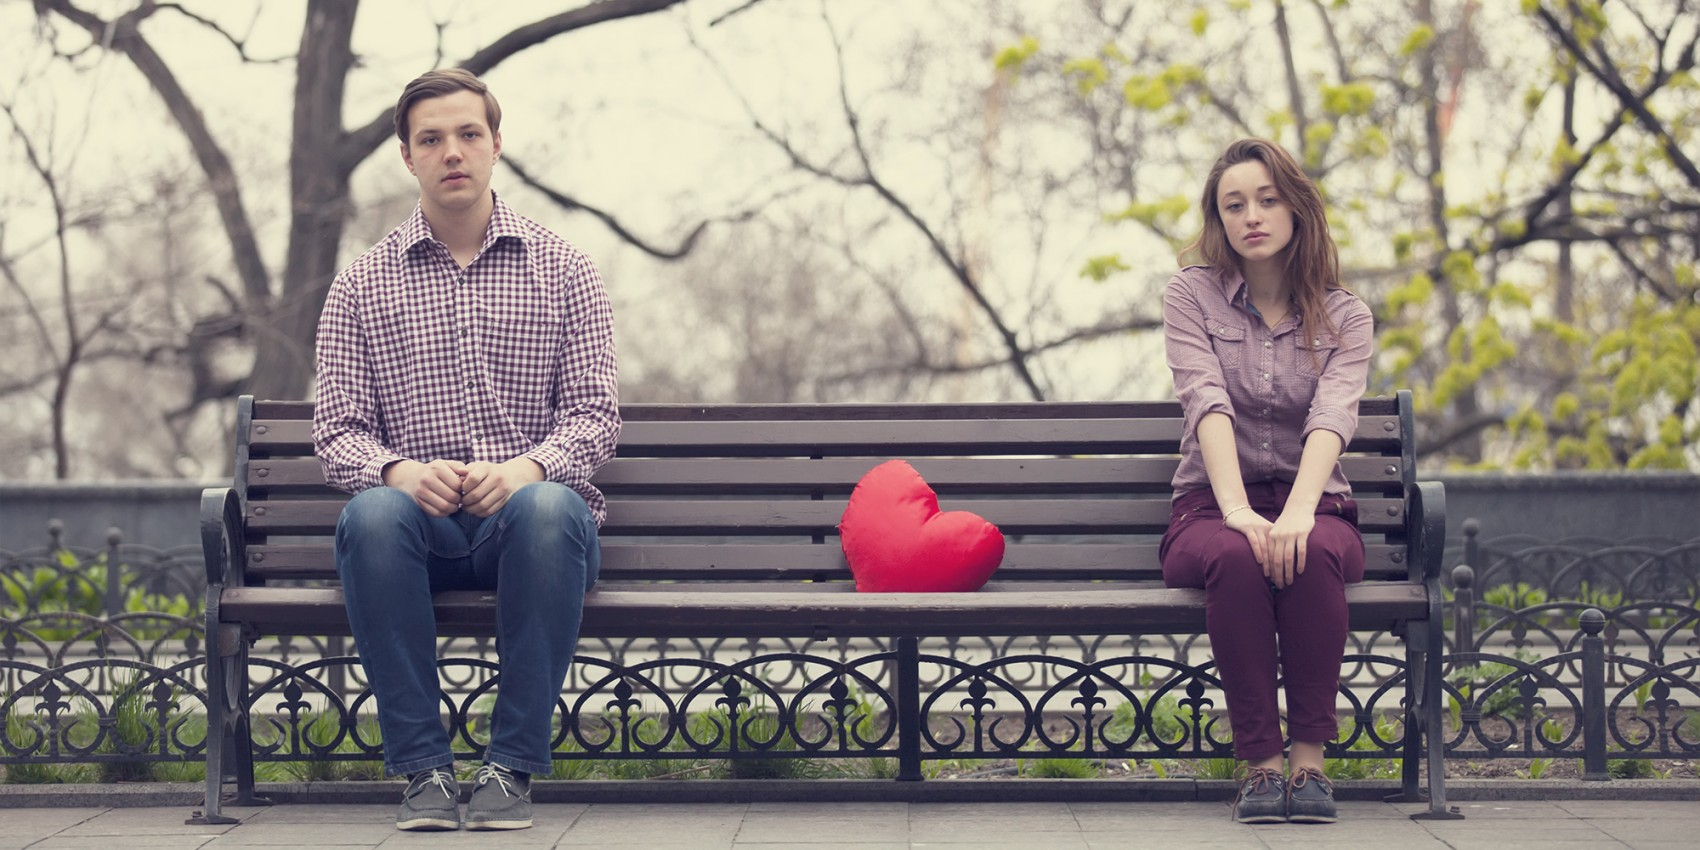 heartbreak without dating does my husband have a dating profile